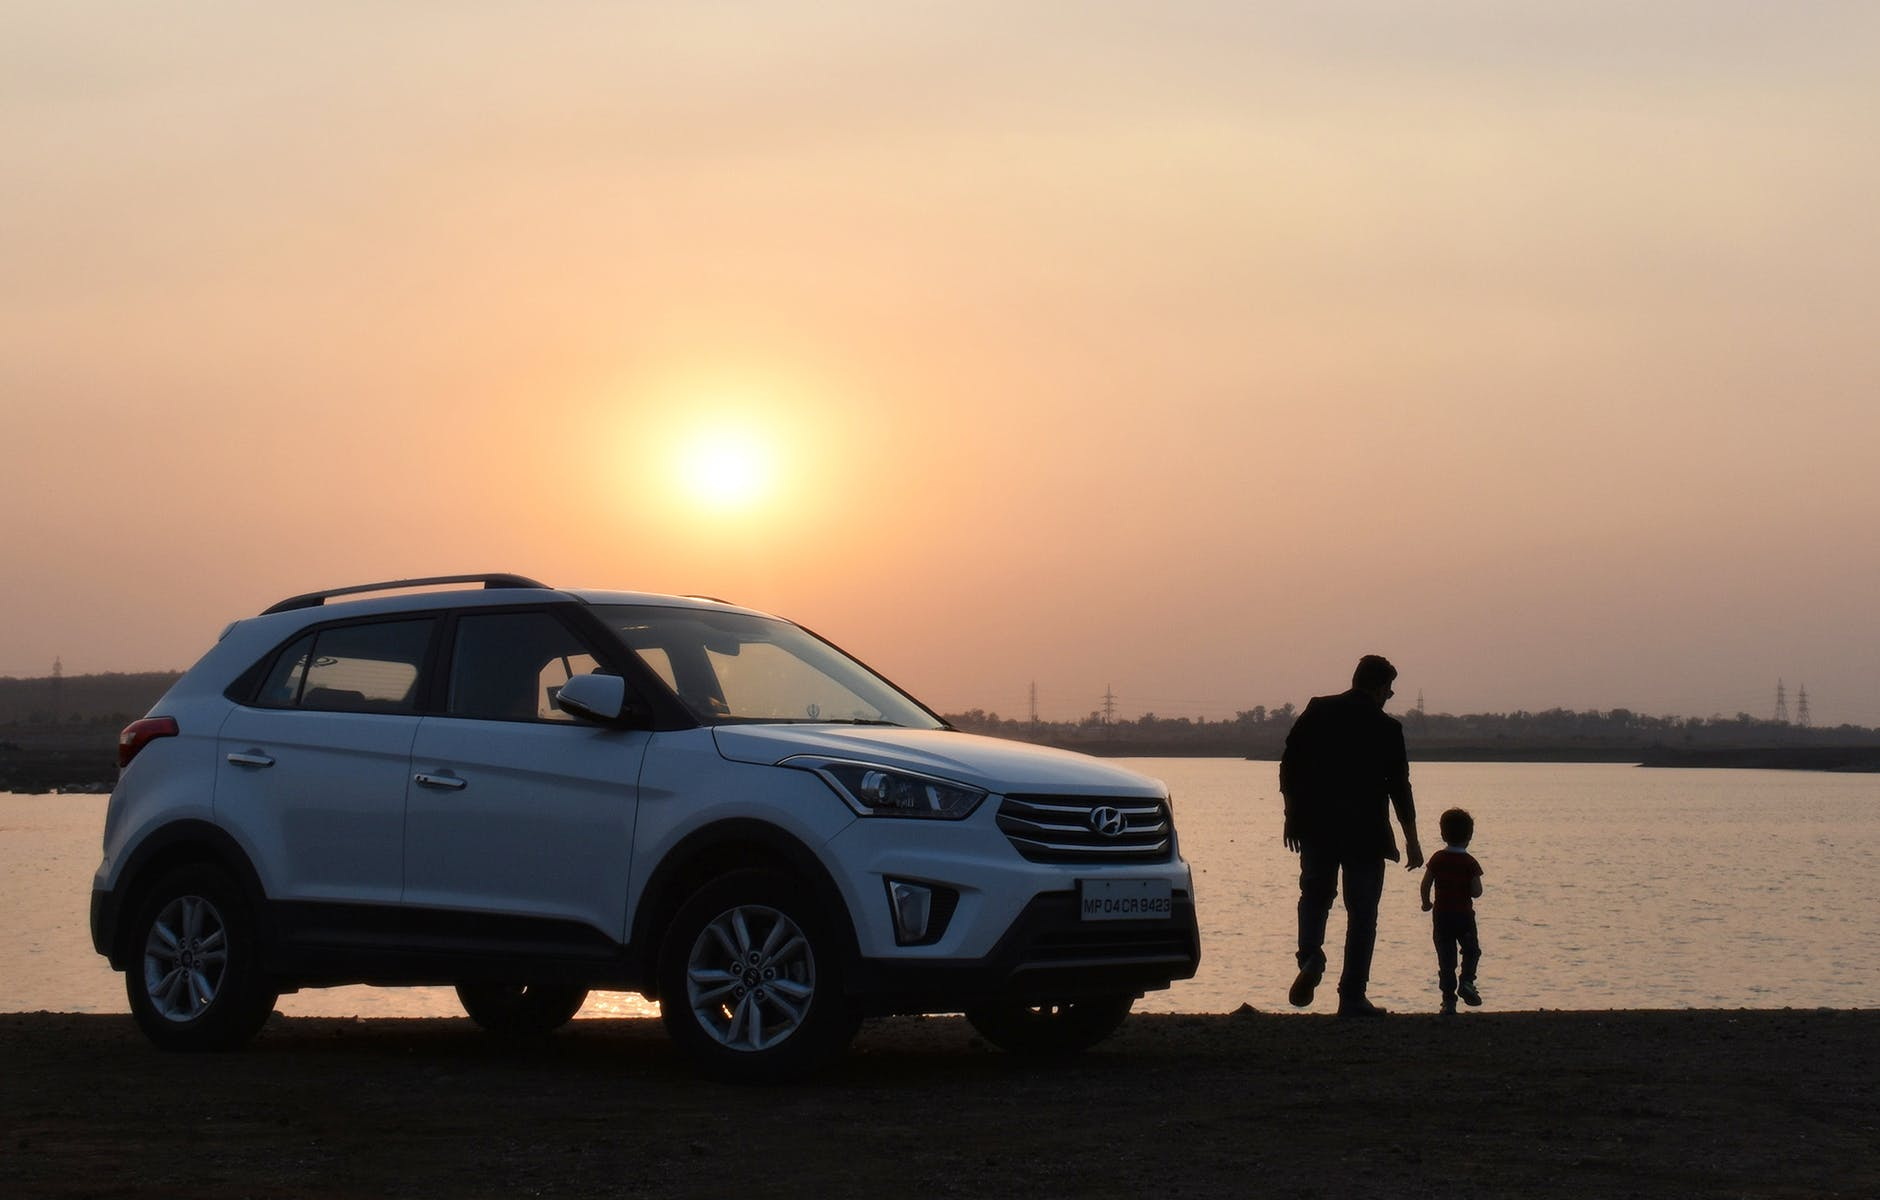 Best Family SUV Of 2019 Will Make You Fall In Love With Them